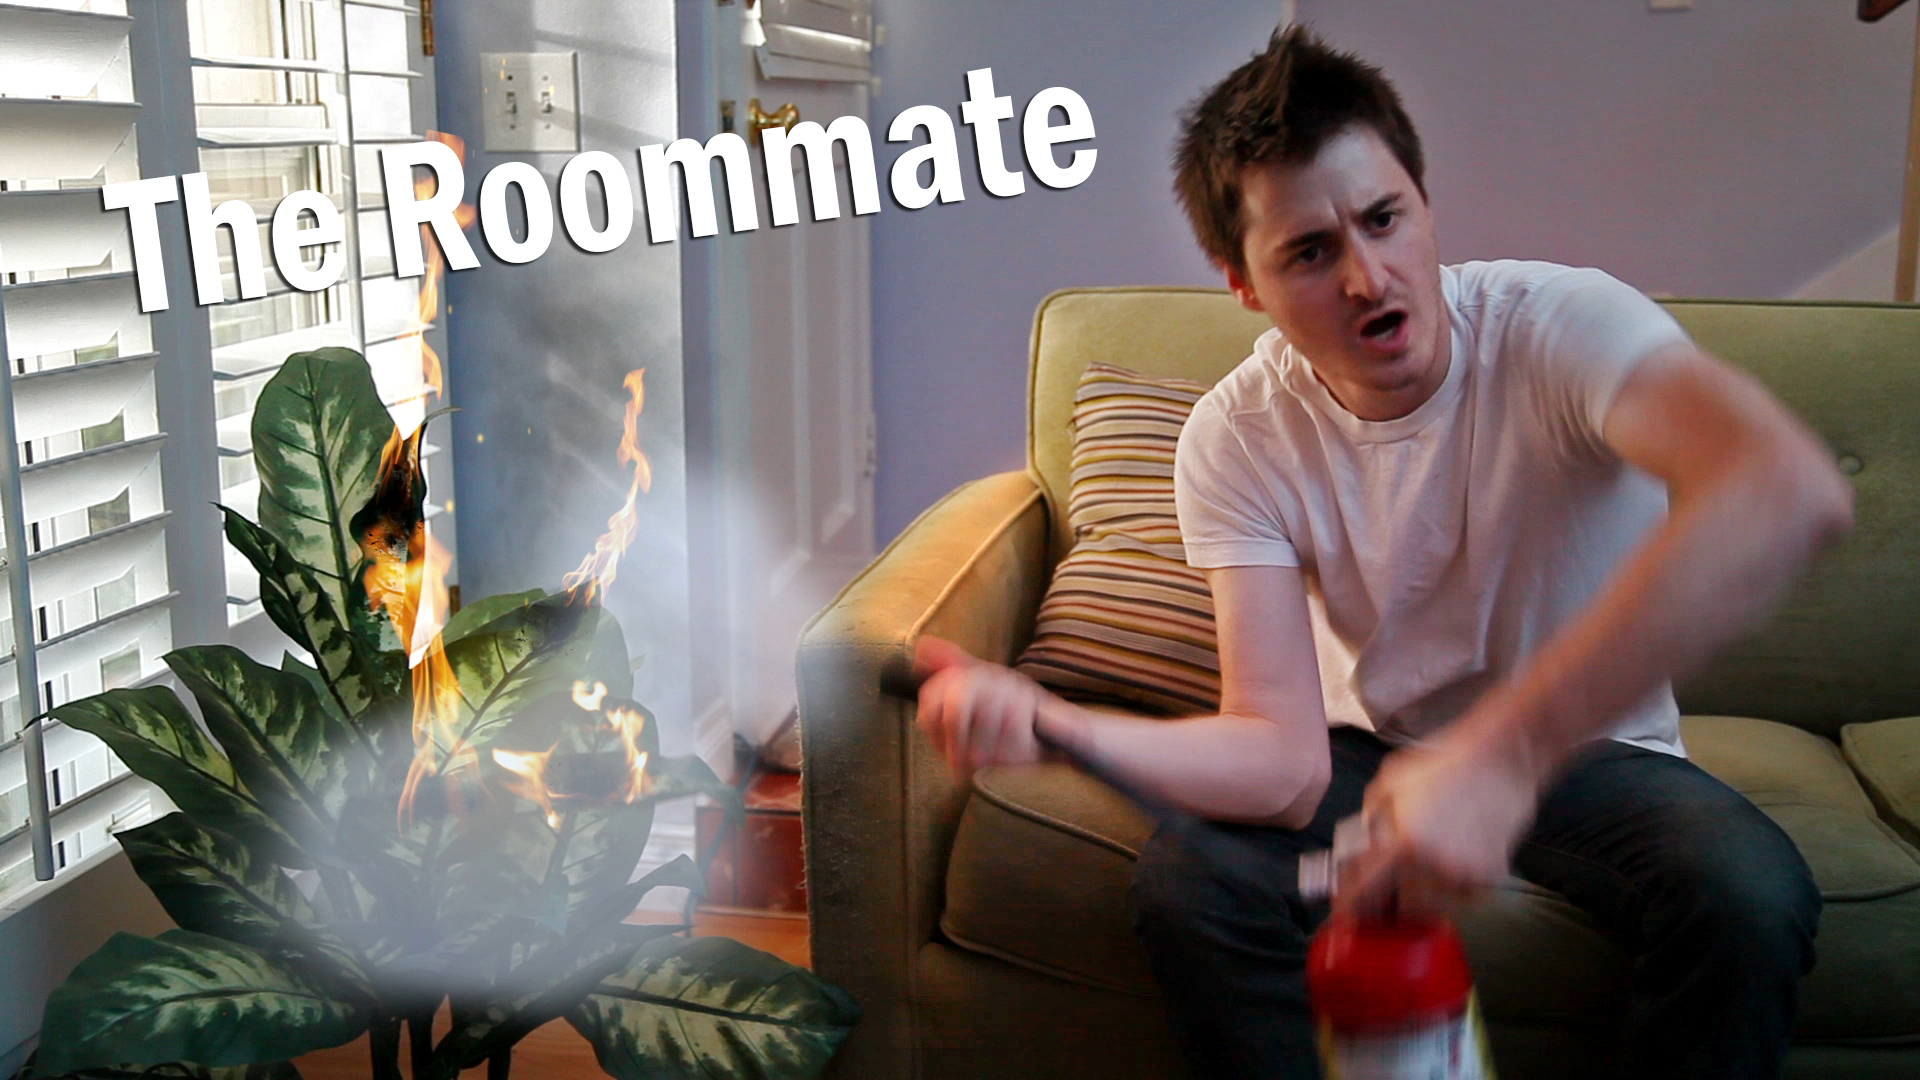 <b>Dave and Eli hold an intervention for their unruly roommate.</b>